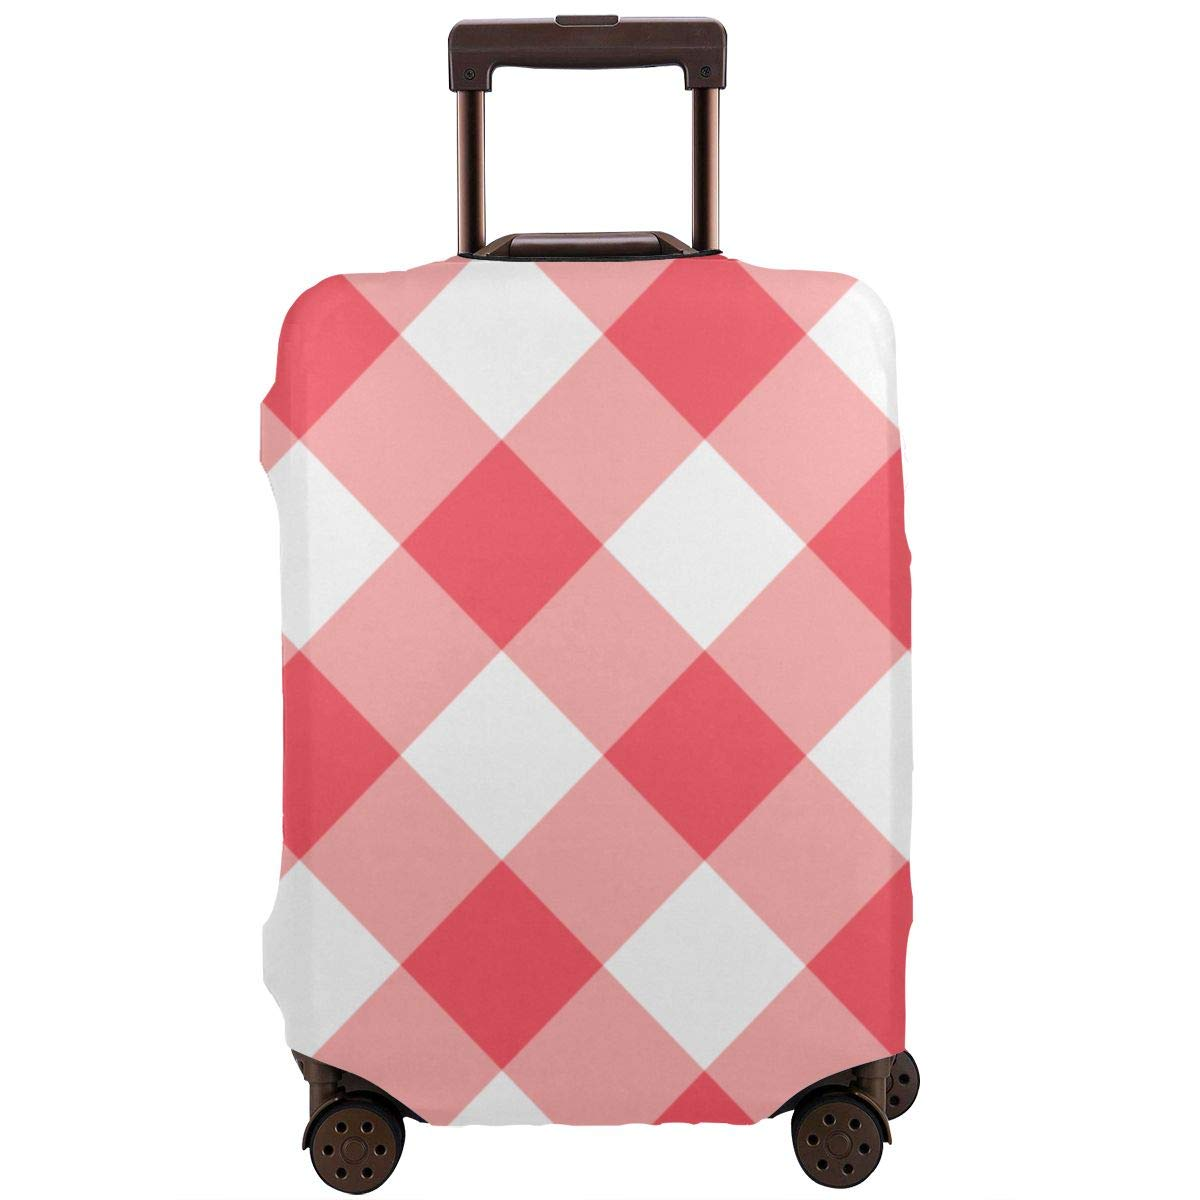 Shabby Chic Rose Patterns3 XL Luggage Cover Elastic Travel Suitcase Protector Fits 18-32 Inch